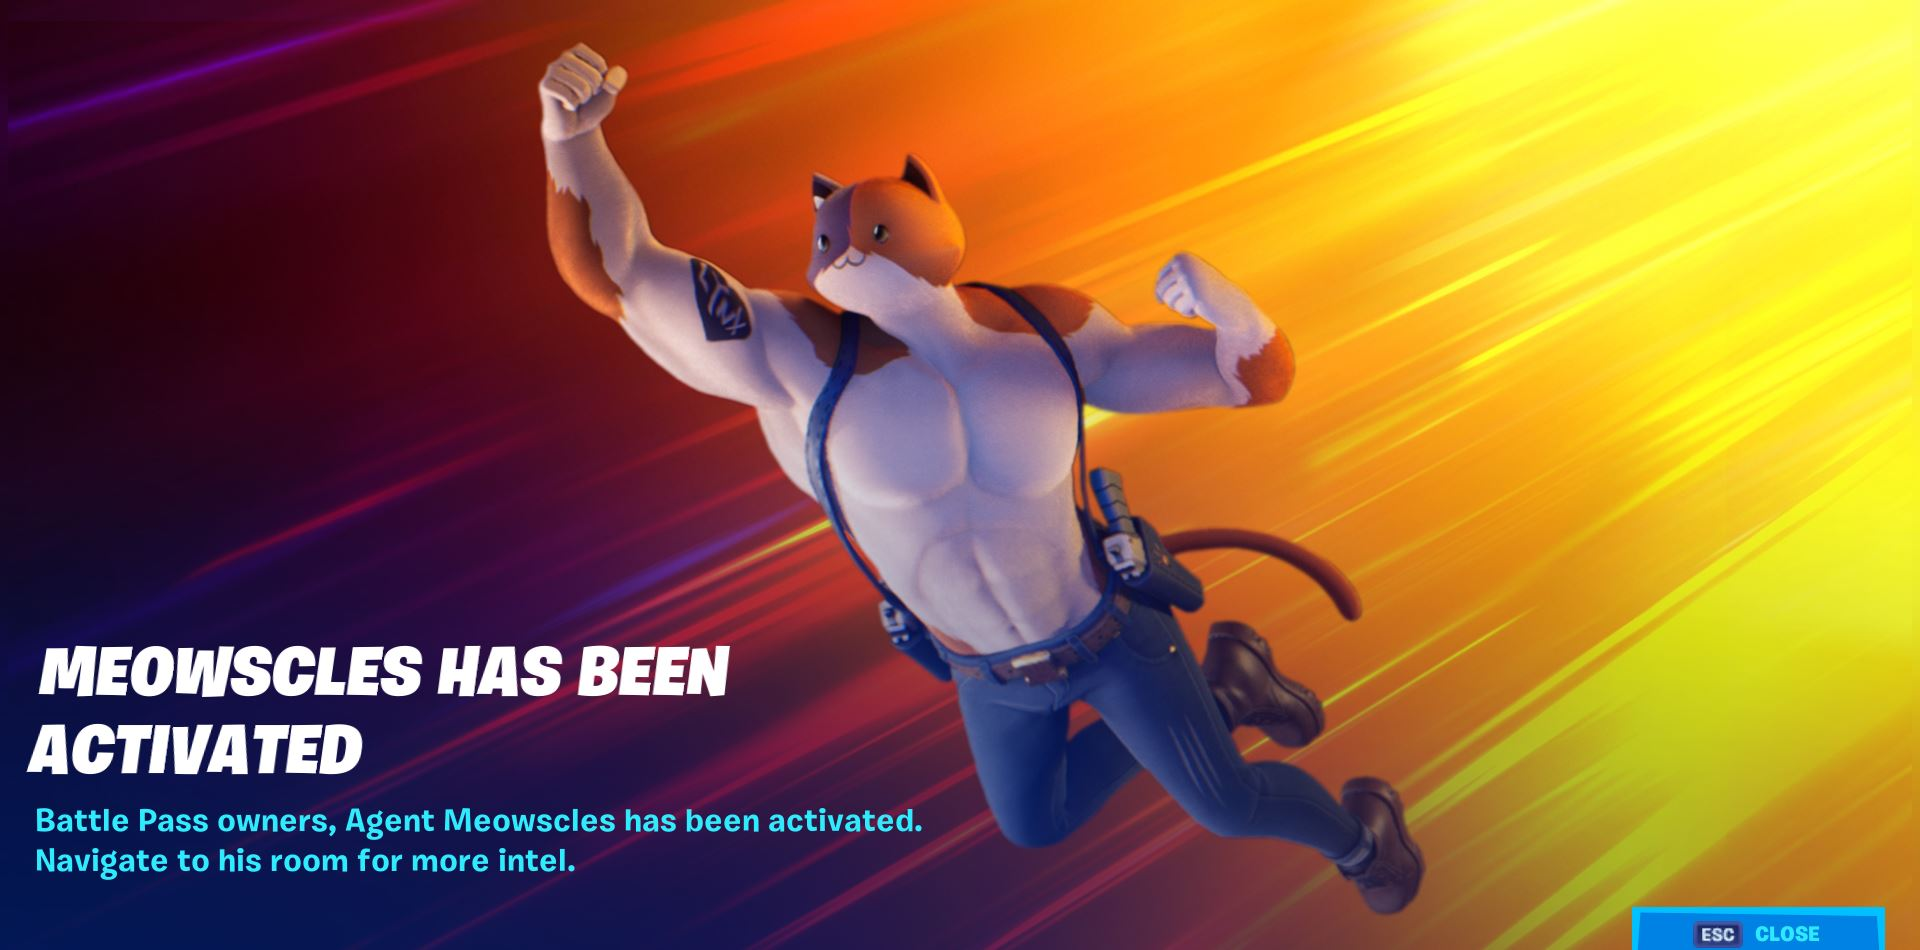 How to complete Meowscles' Mischief challenges in Fortnite